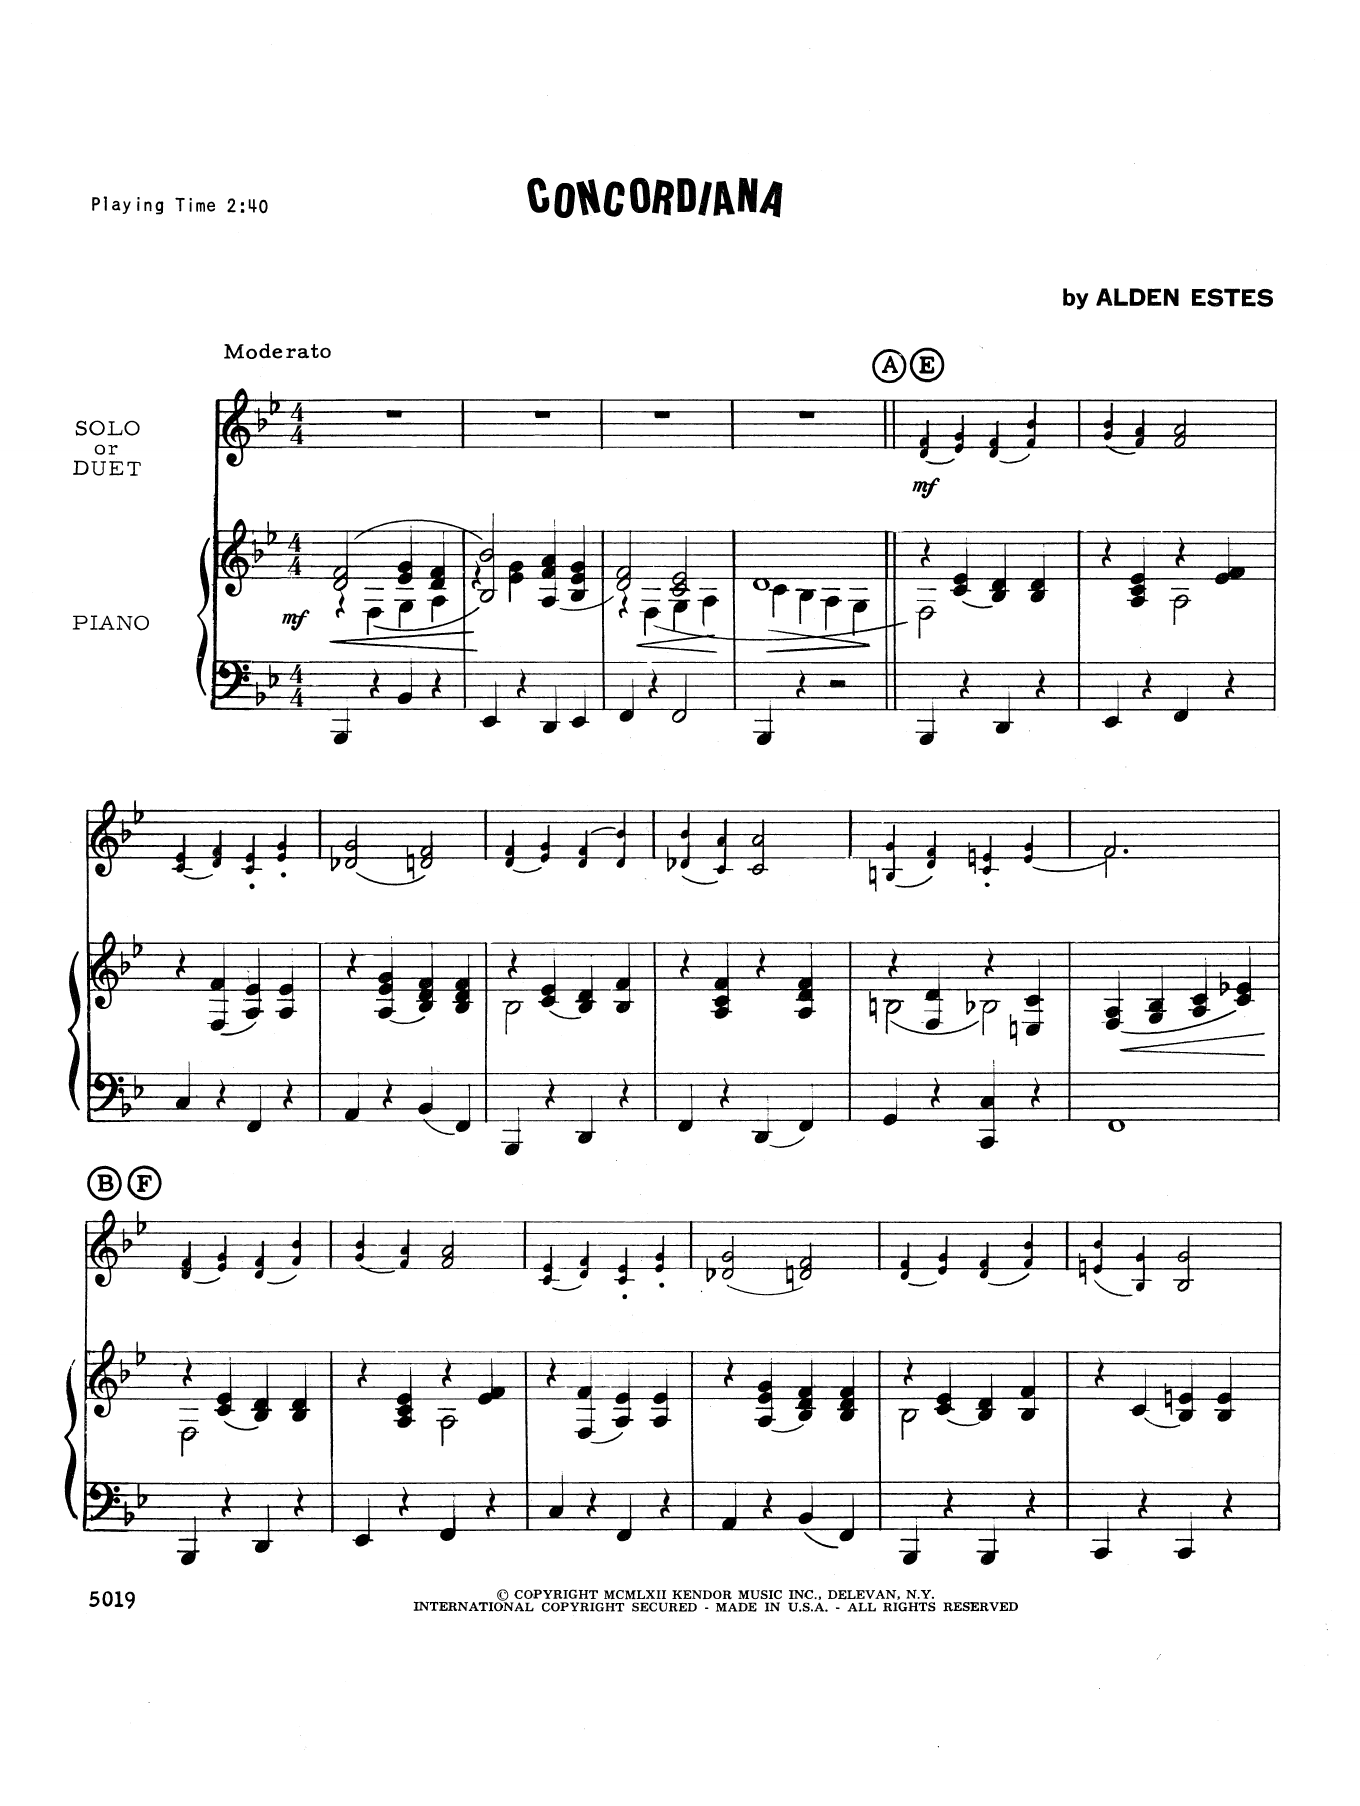 Concordiana - Piano Accompaniment Sheet Music